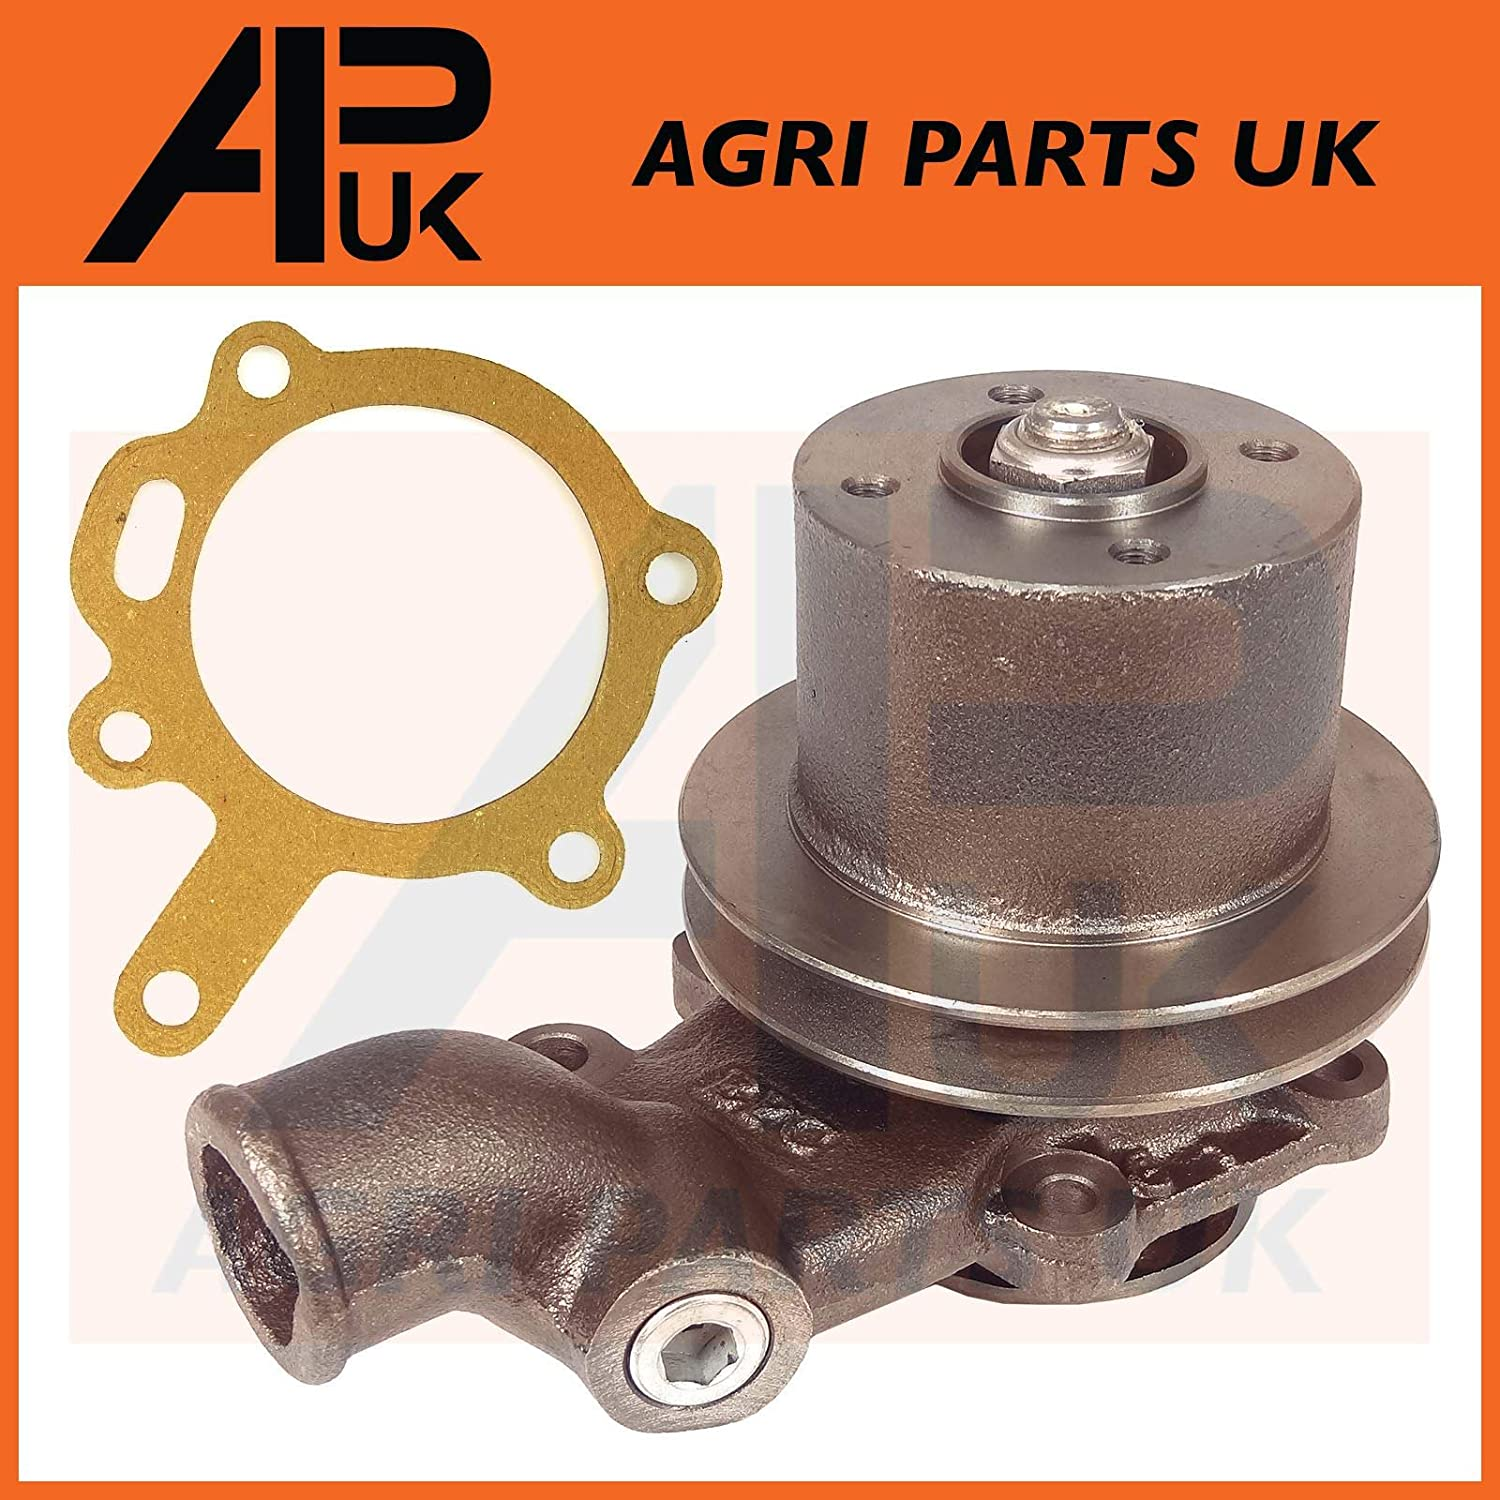 APUK Massey Ferguson 165 168 175 178 185 188 240 261 Tractor Water Pump with Pulley Agri Parts UK Ltd